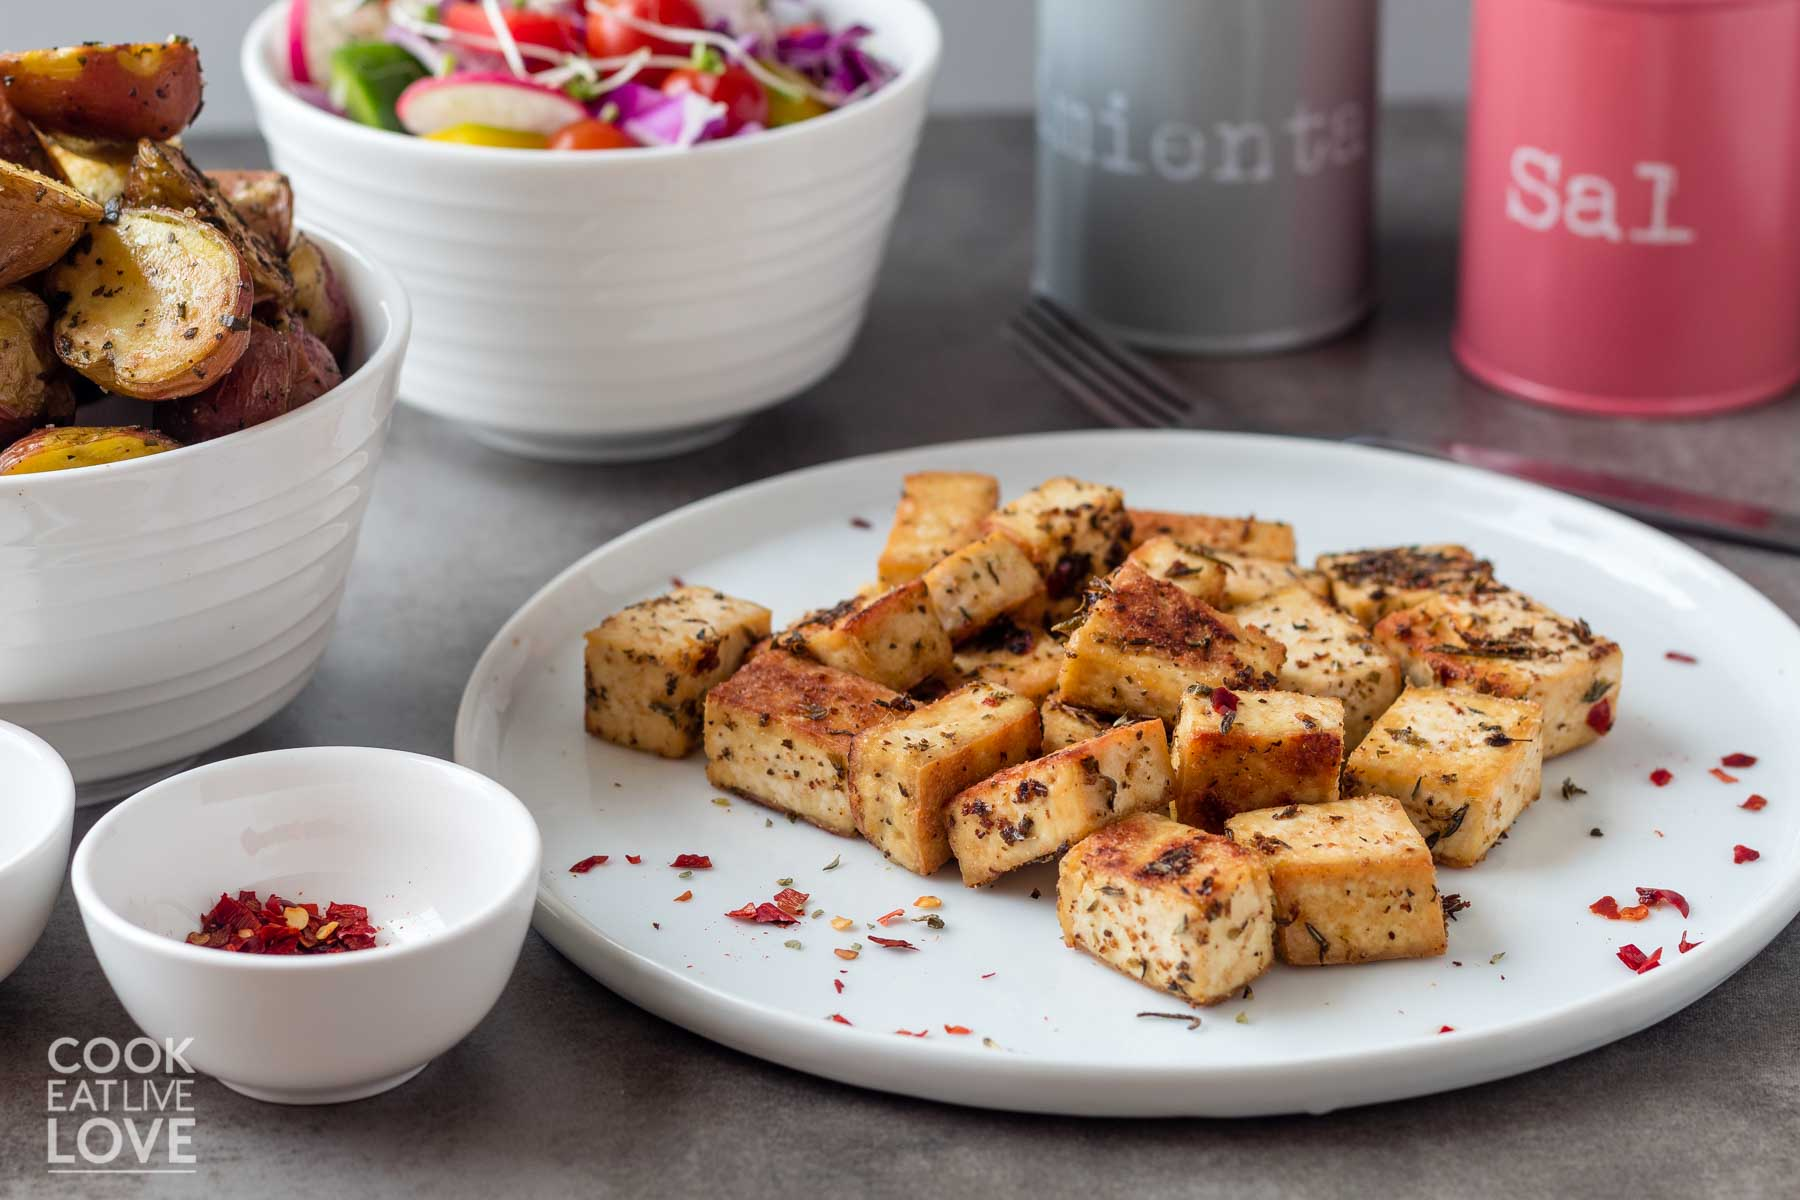 Cubes of marinated tofu on a plate